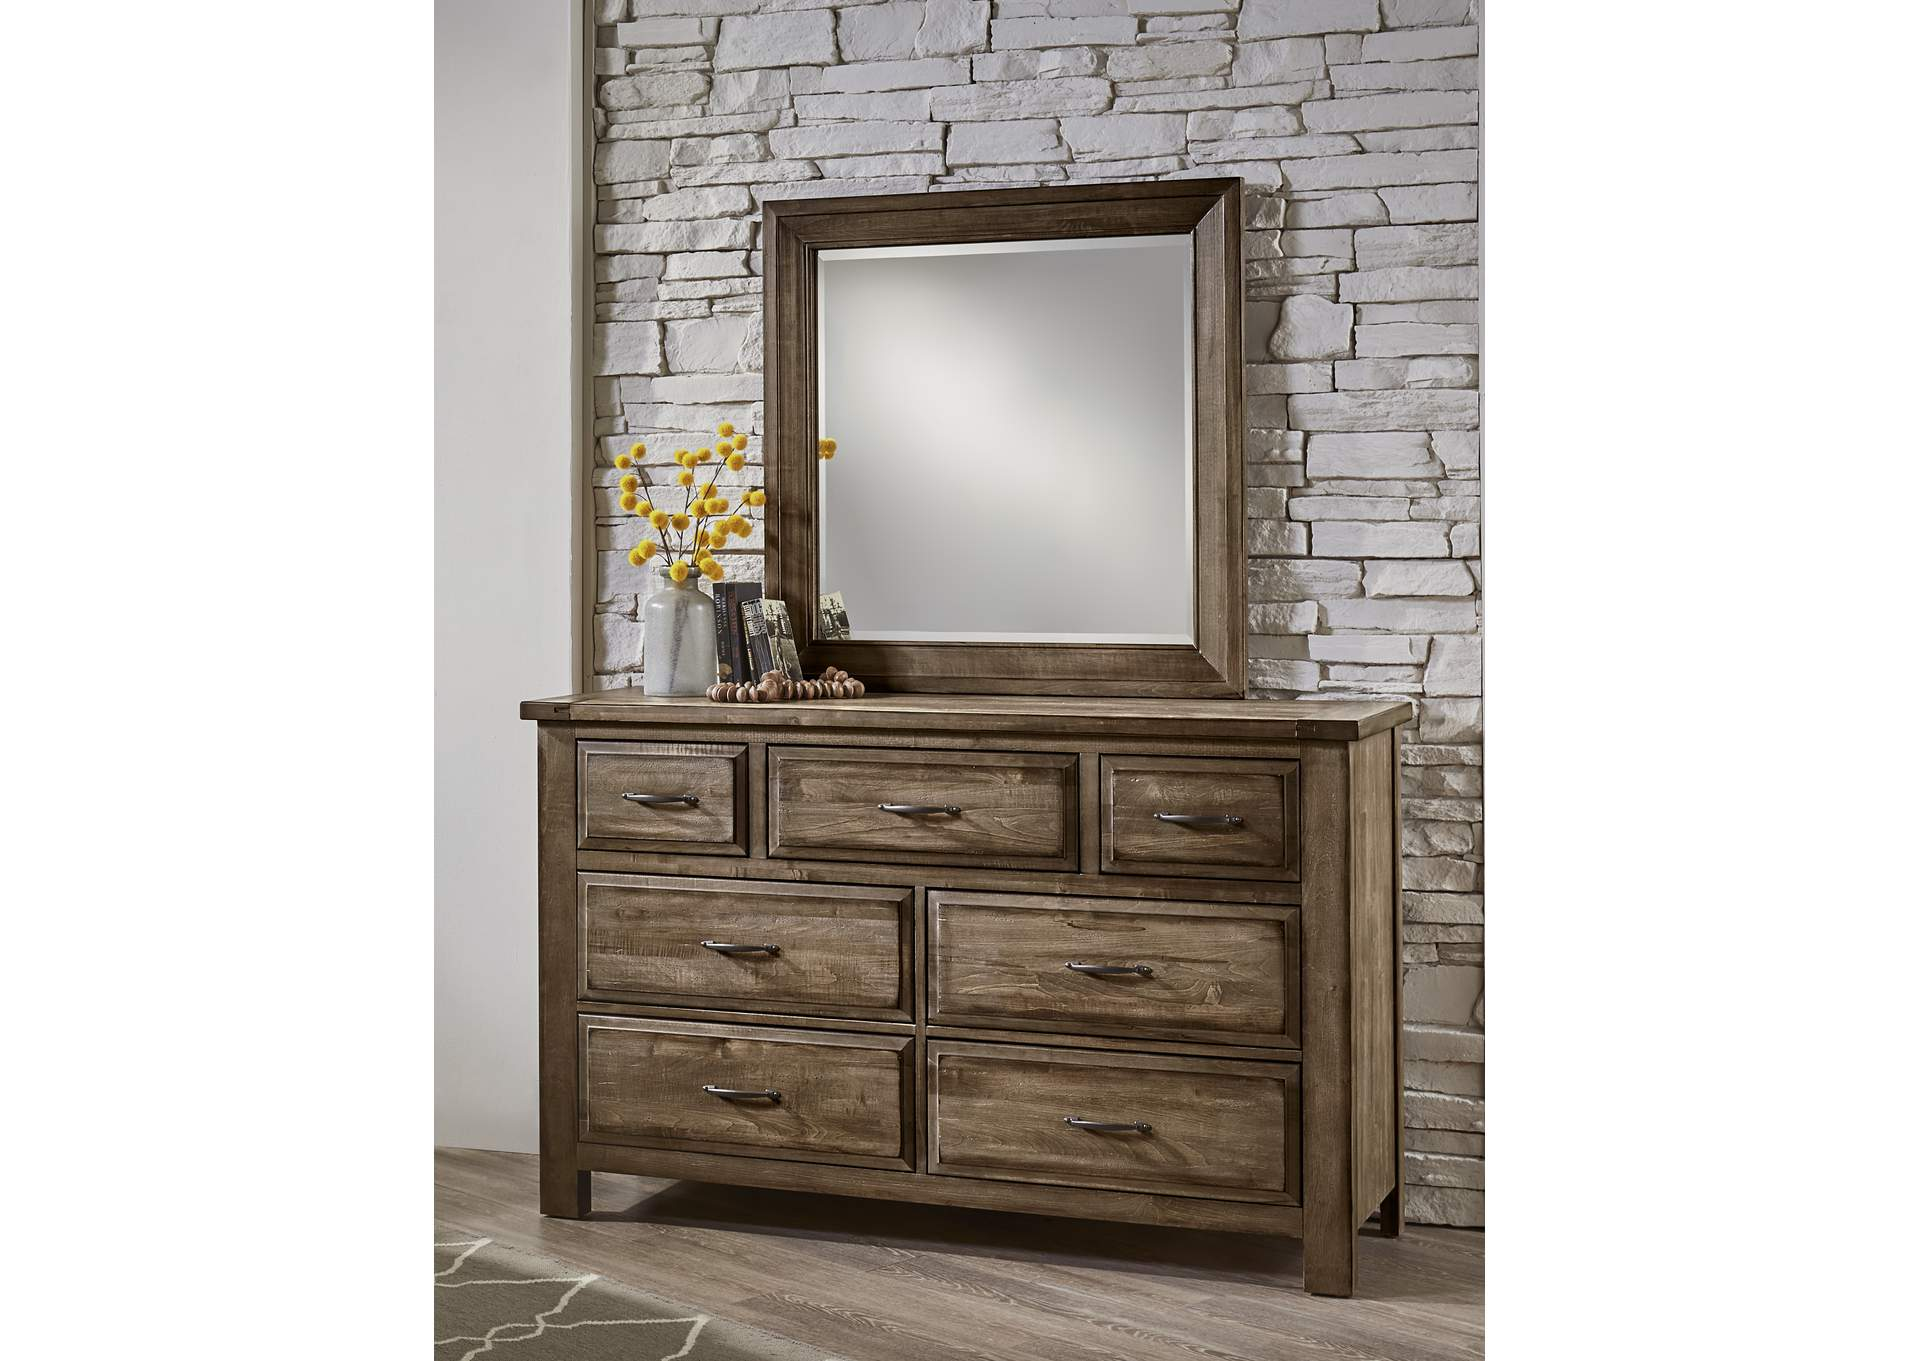 Maple Road Tobacco Brown Triple Dresser - 7 Drawer w/Landscape Mirror,Vaughan-Bassett